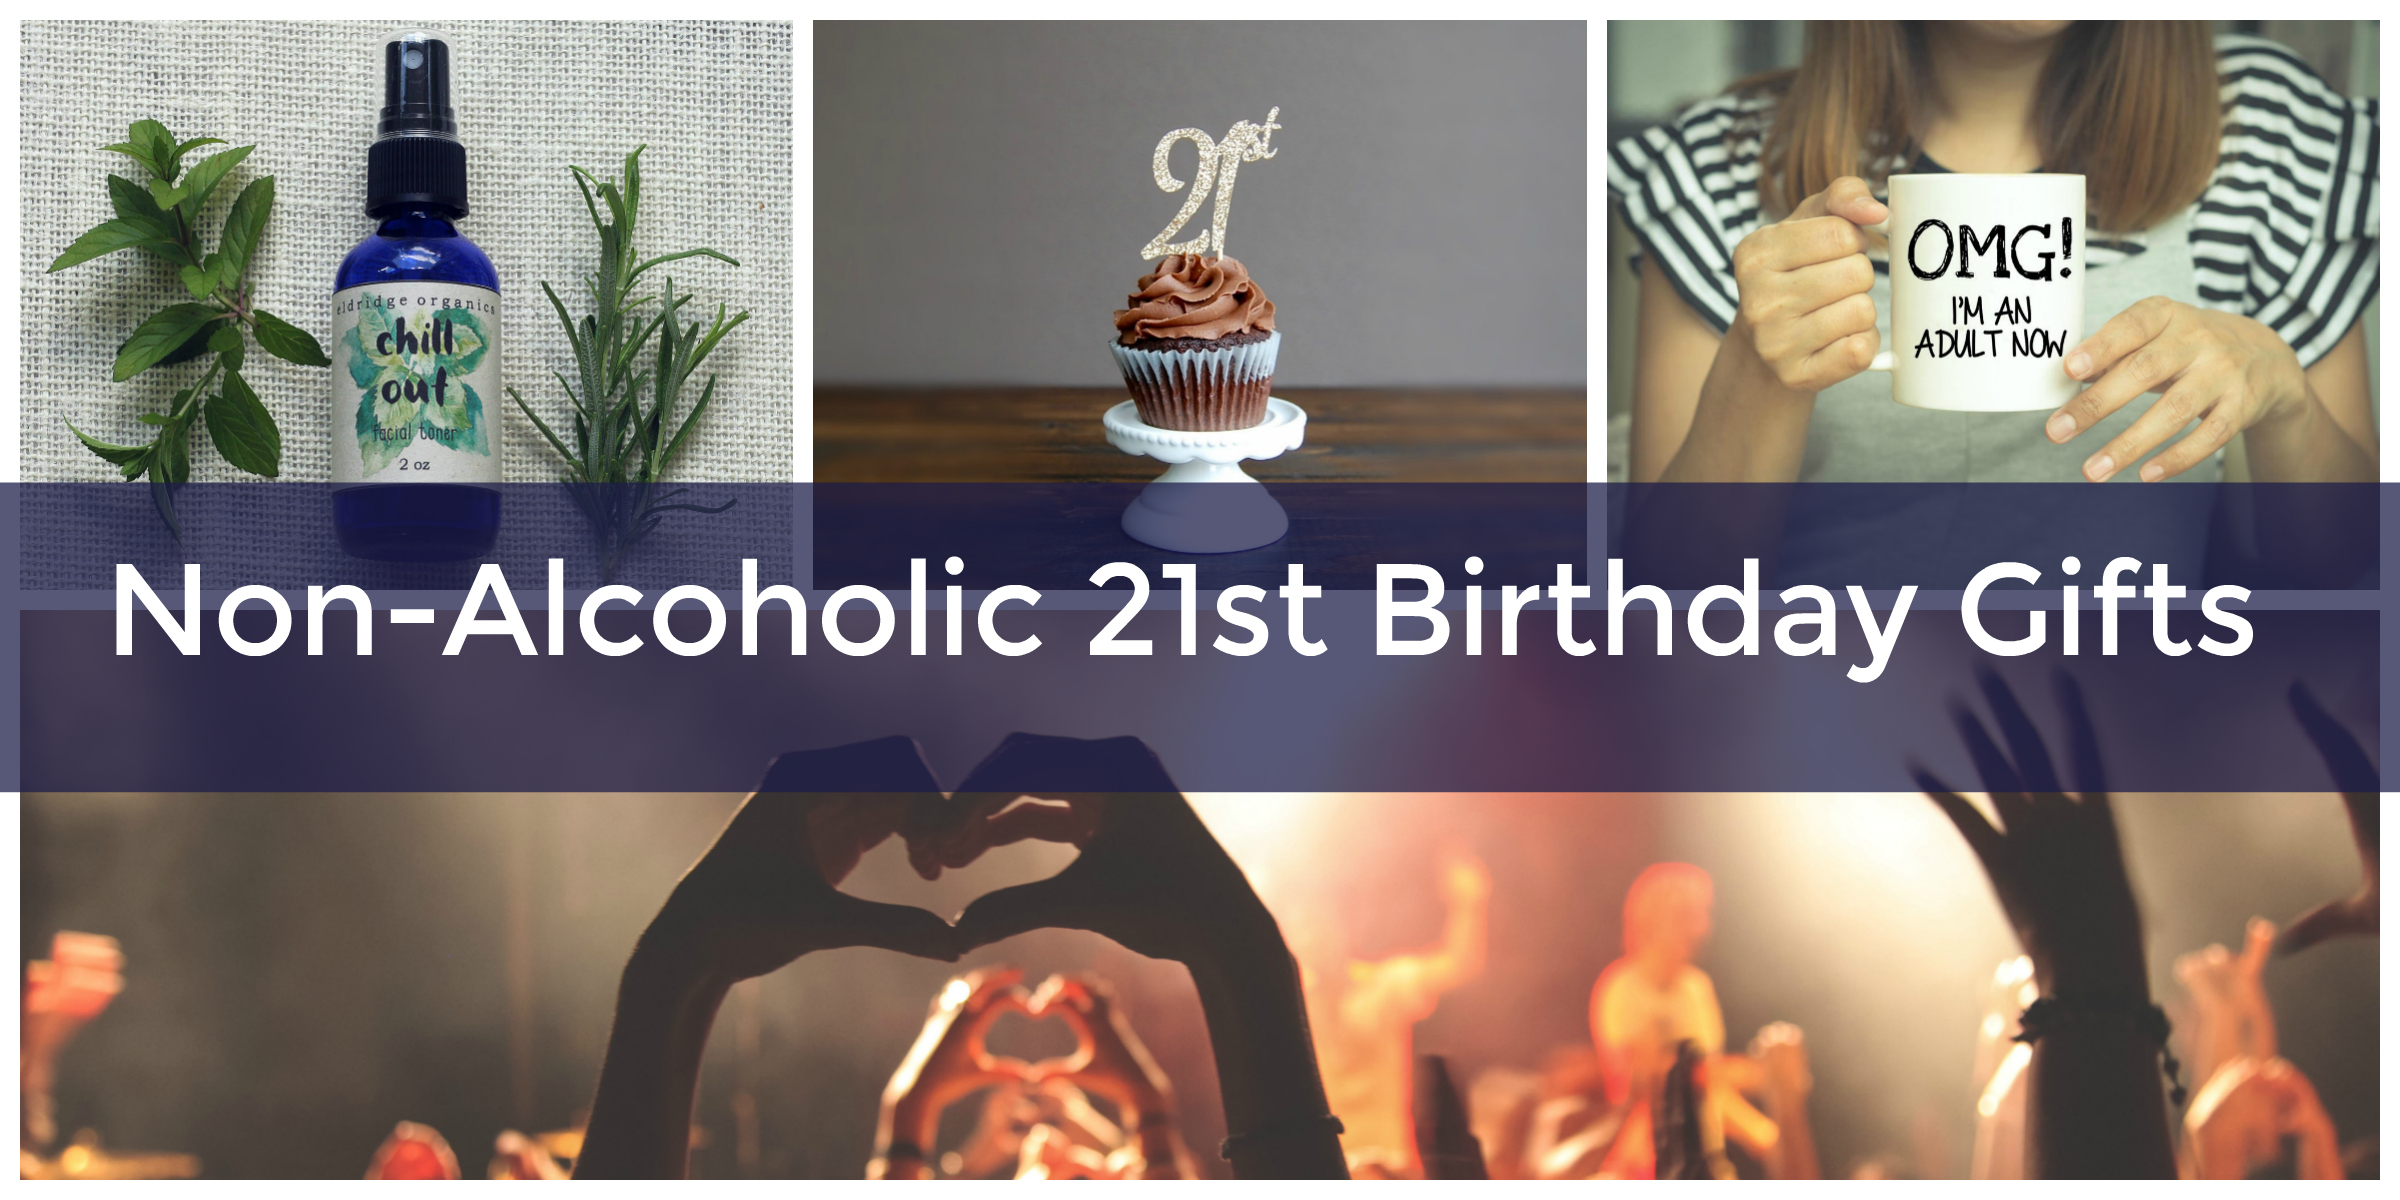 Fun Non Alcoholic 21st Birthday Gift Ideas That Take The Cake